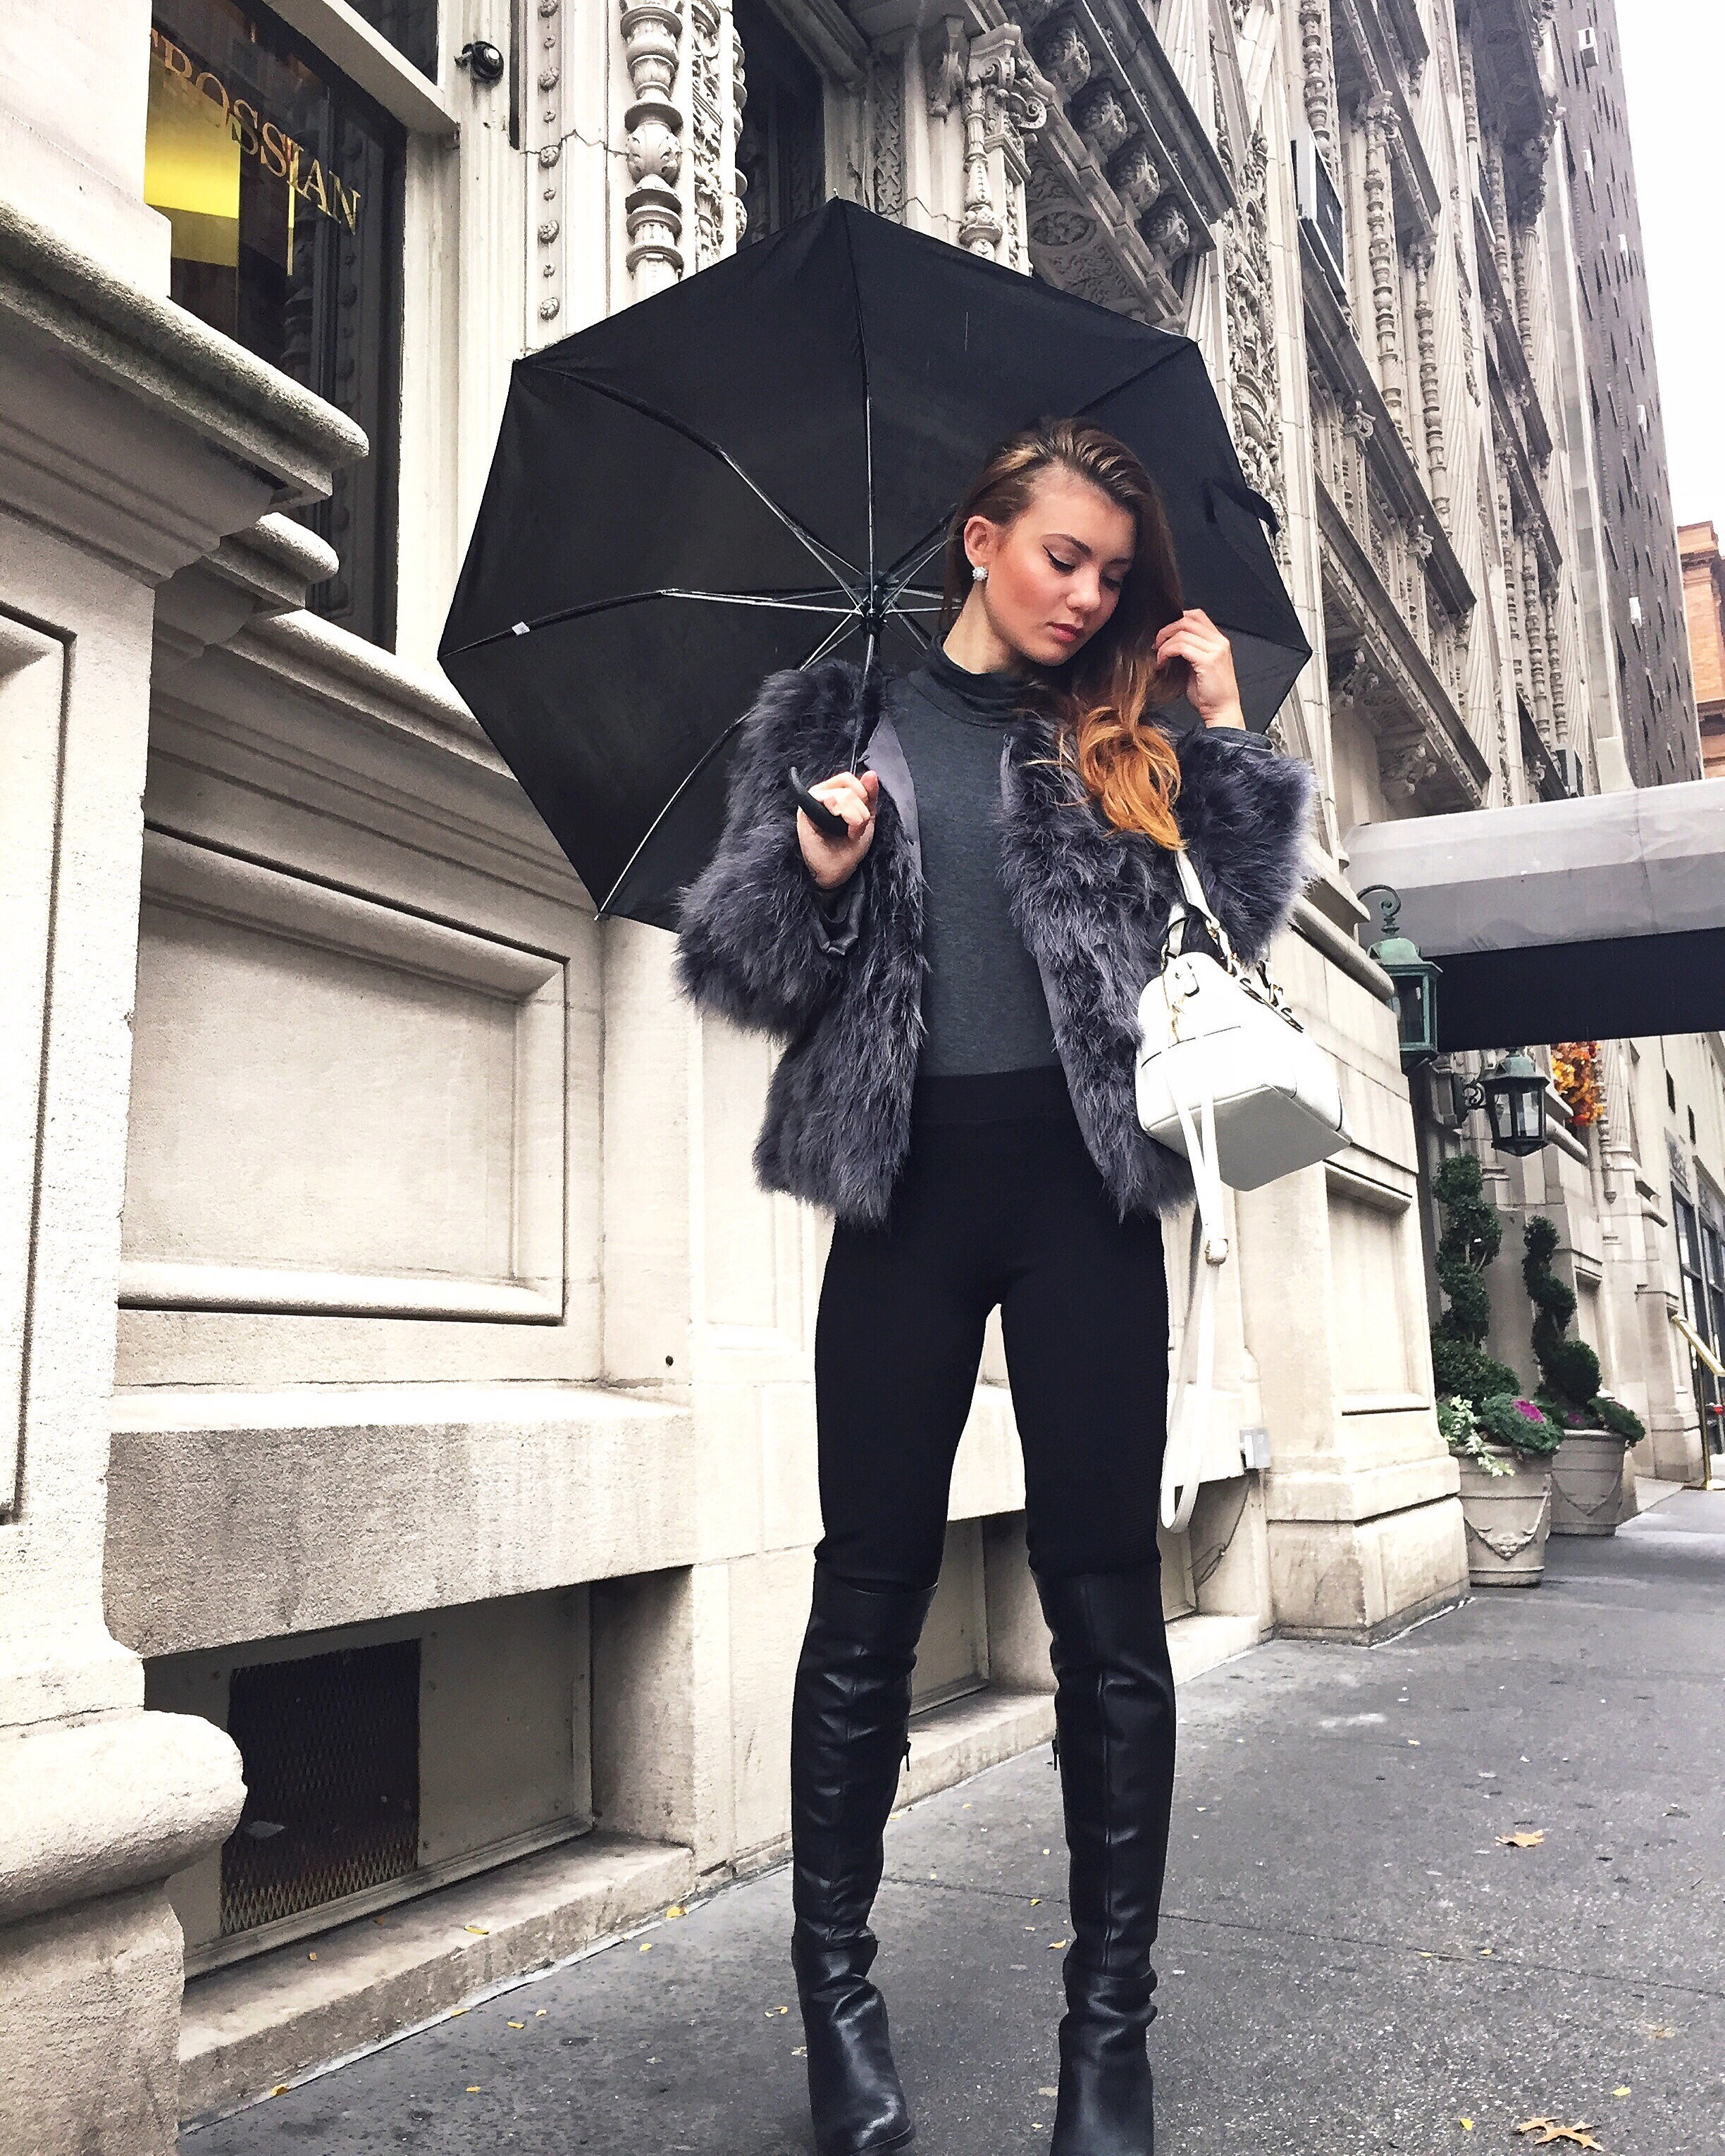 Juliana Chow Fashion Blog Lifestyle March Post Rainy New York City Copenhagen